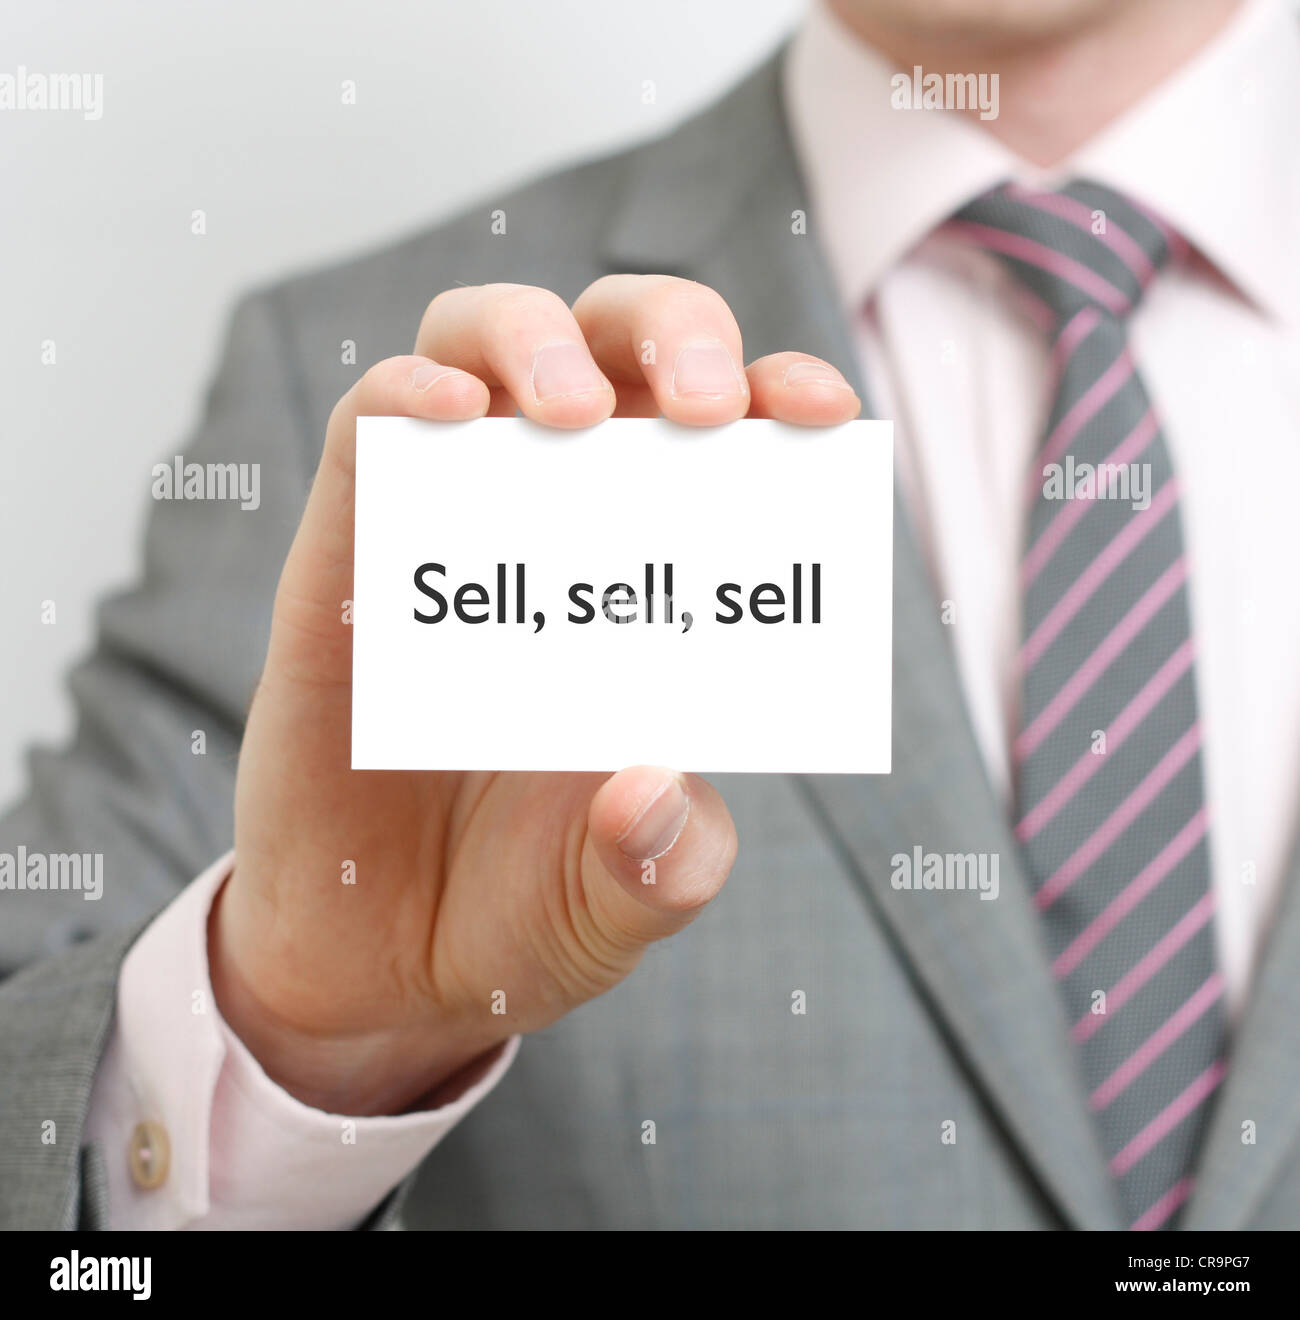 Sell - Stock Image